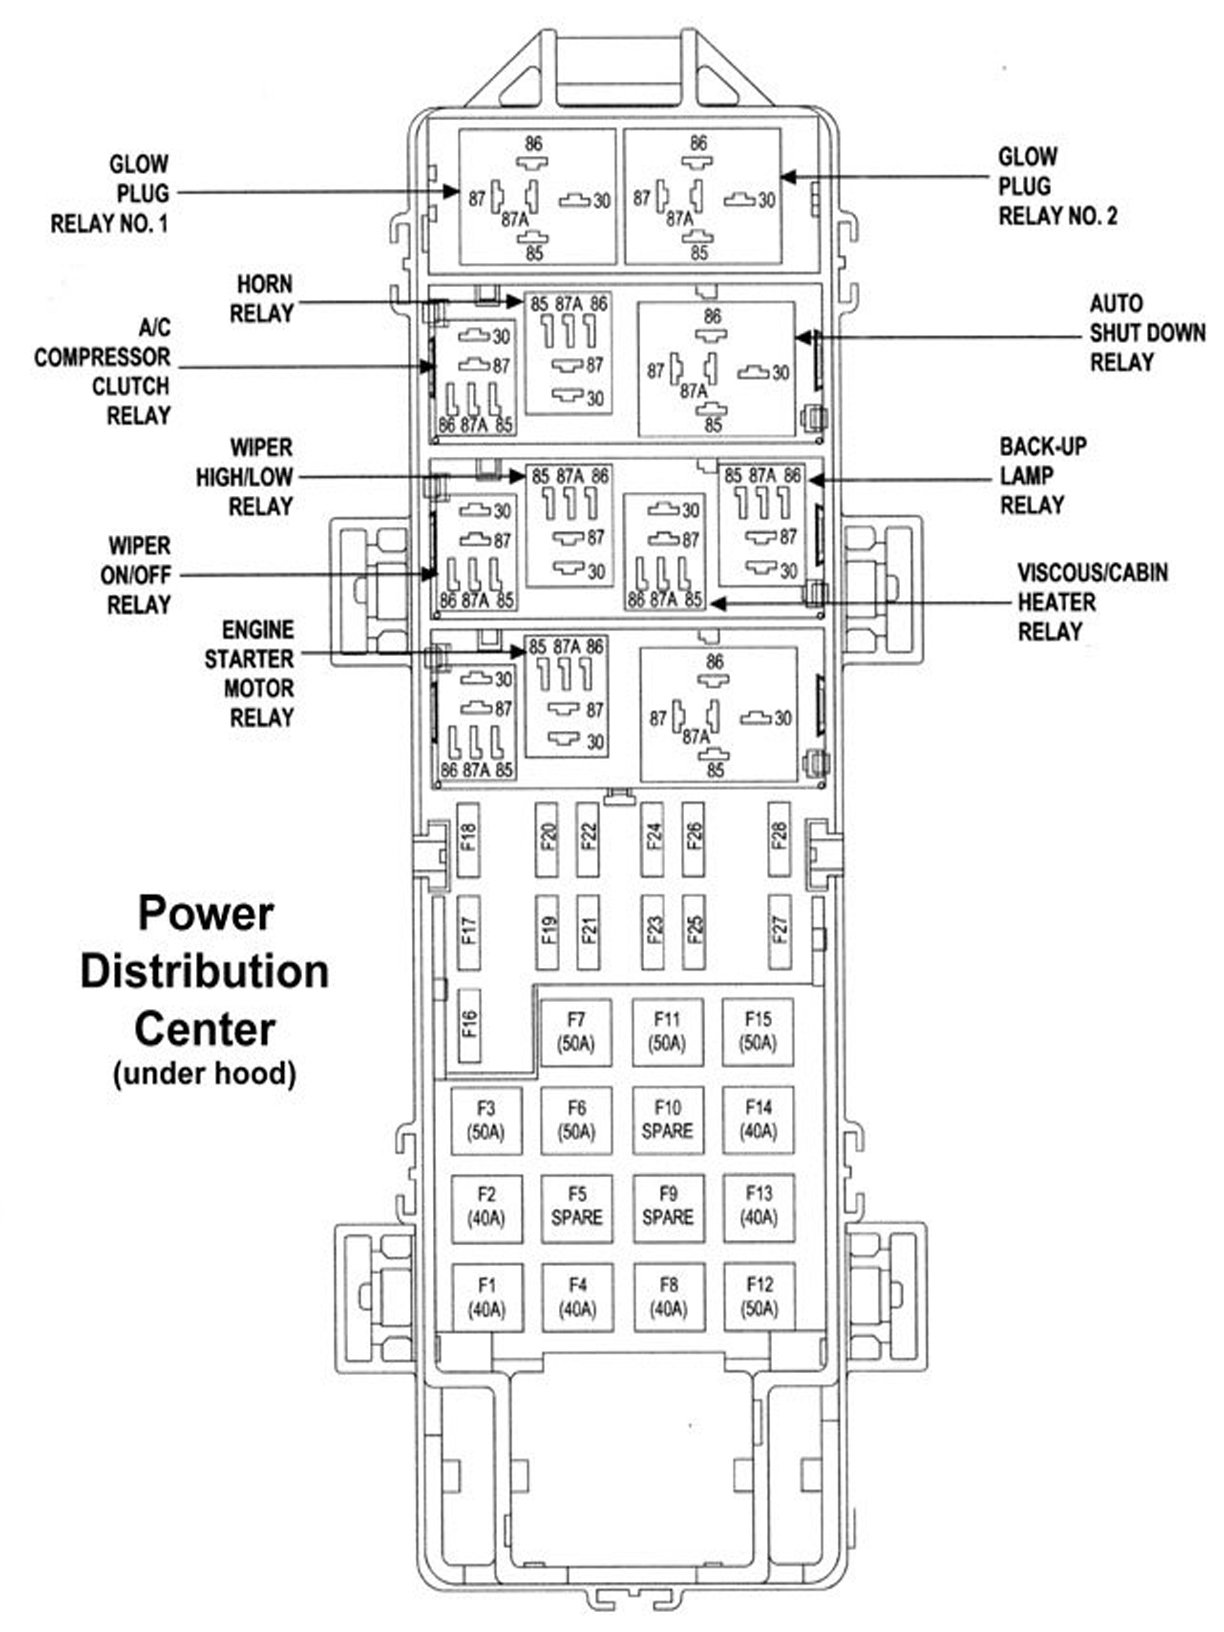 AAAAAAAAug 28 Fuse Box 04 91415 jeep grand cherokee wj 1999 to 2004 fuse box diagram cherokeeforum 1998 jeep grand cherokee laredo fuse box diagram at crackthecode.co